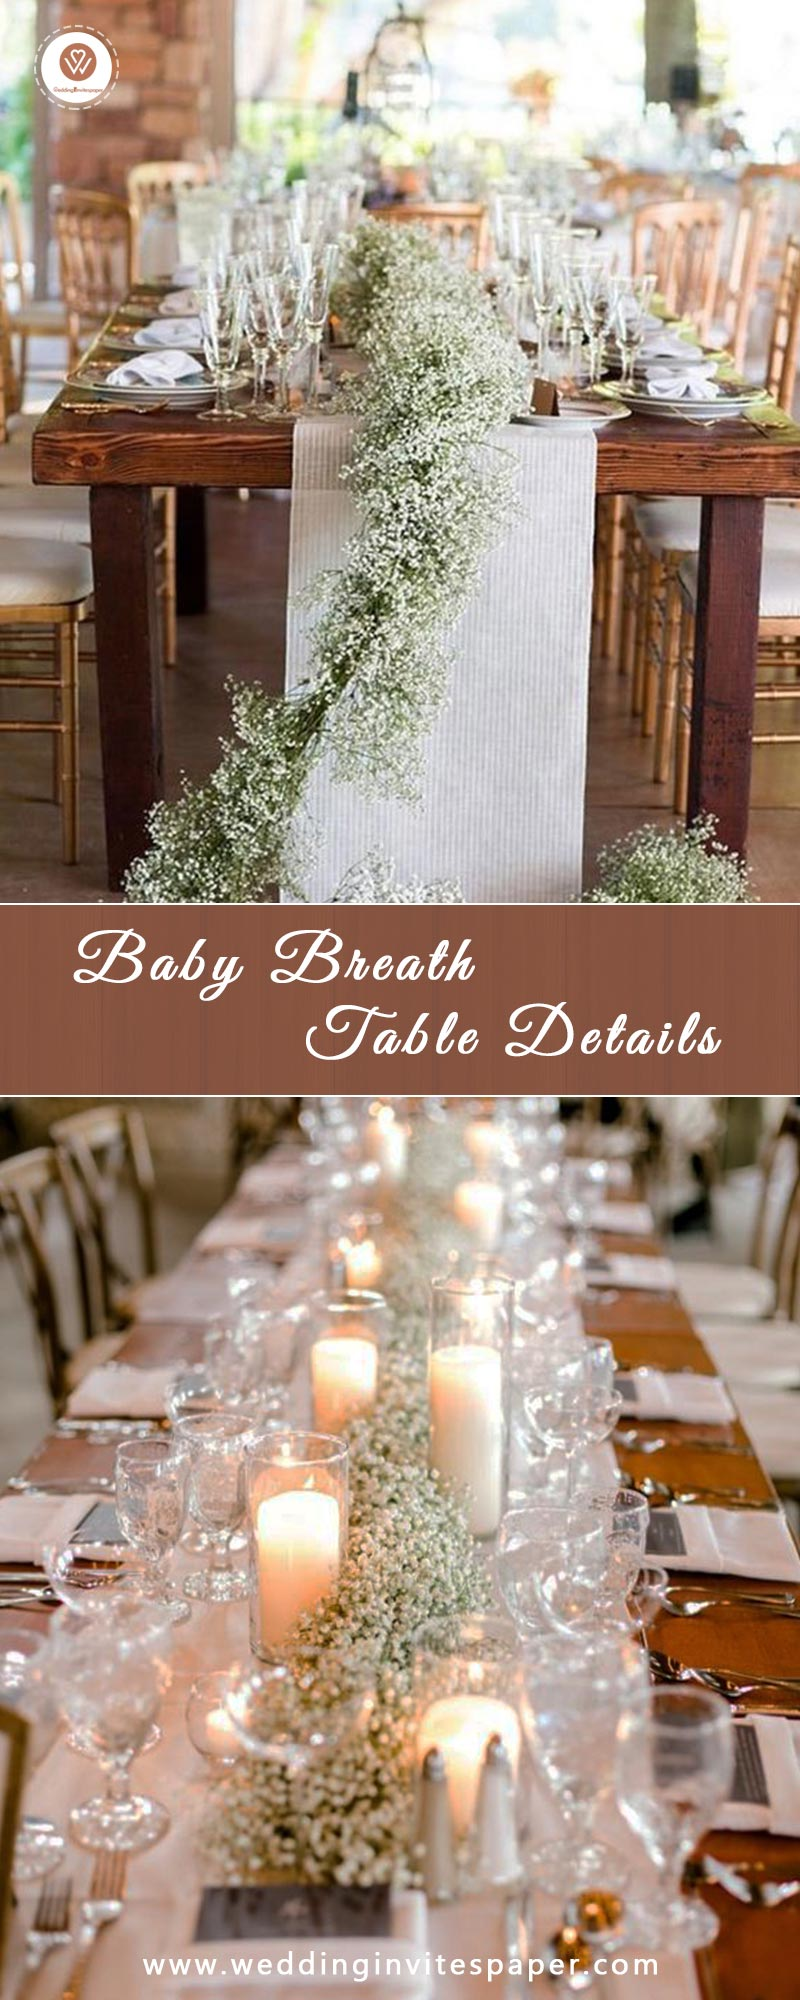 Baby-Breath-Table-Details.jpg